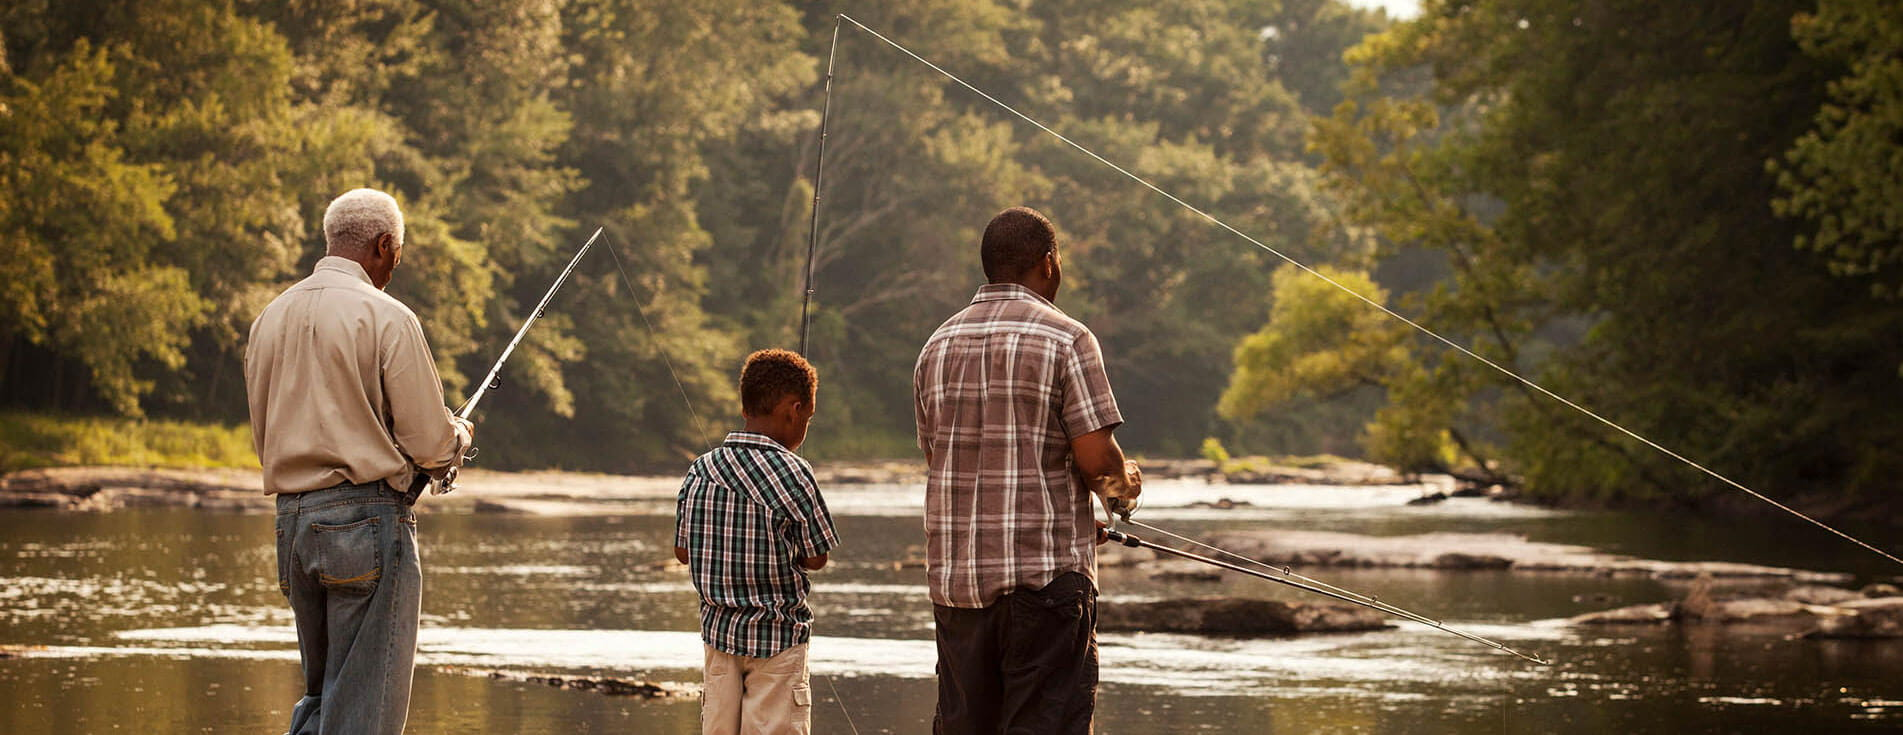 Family fishing together.